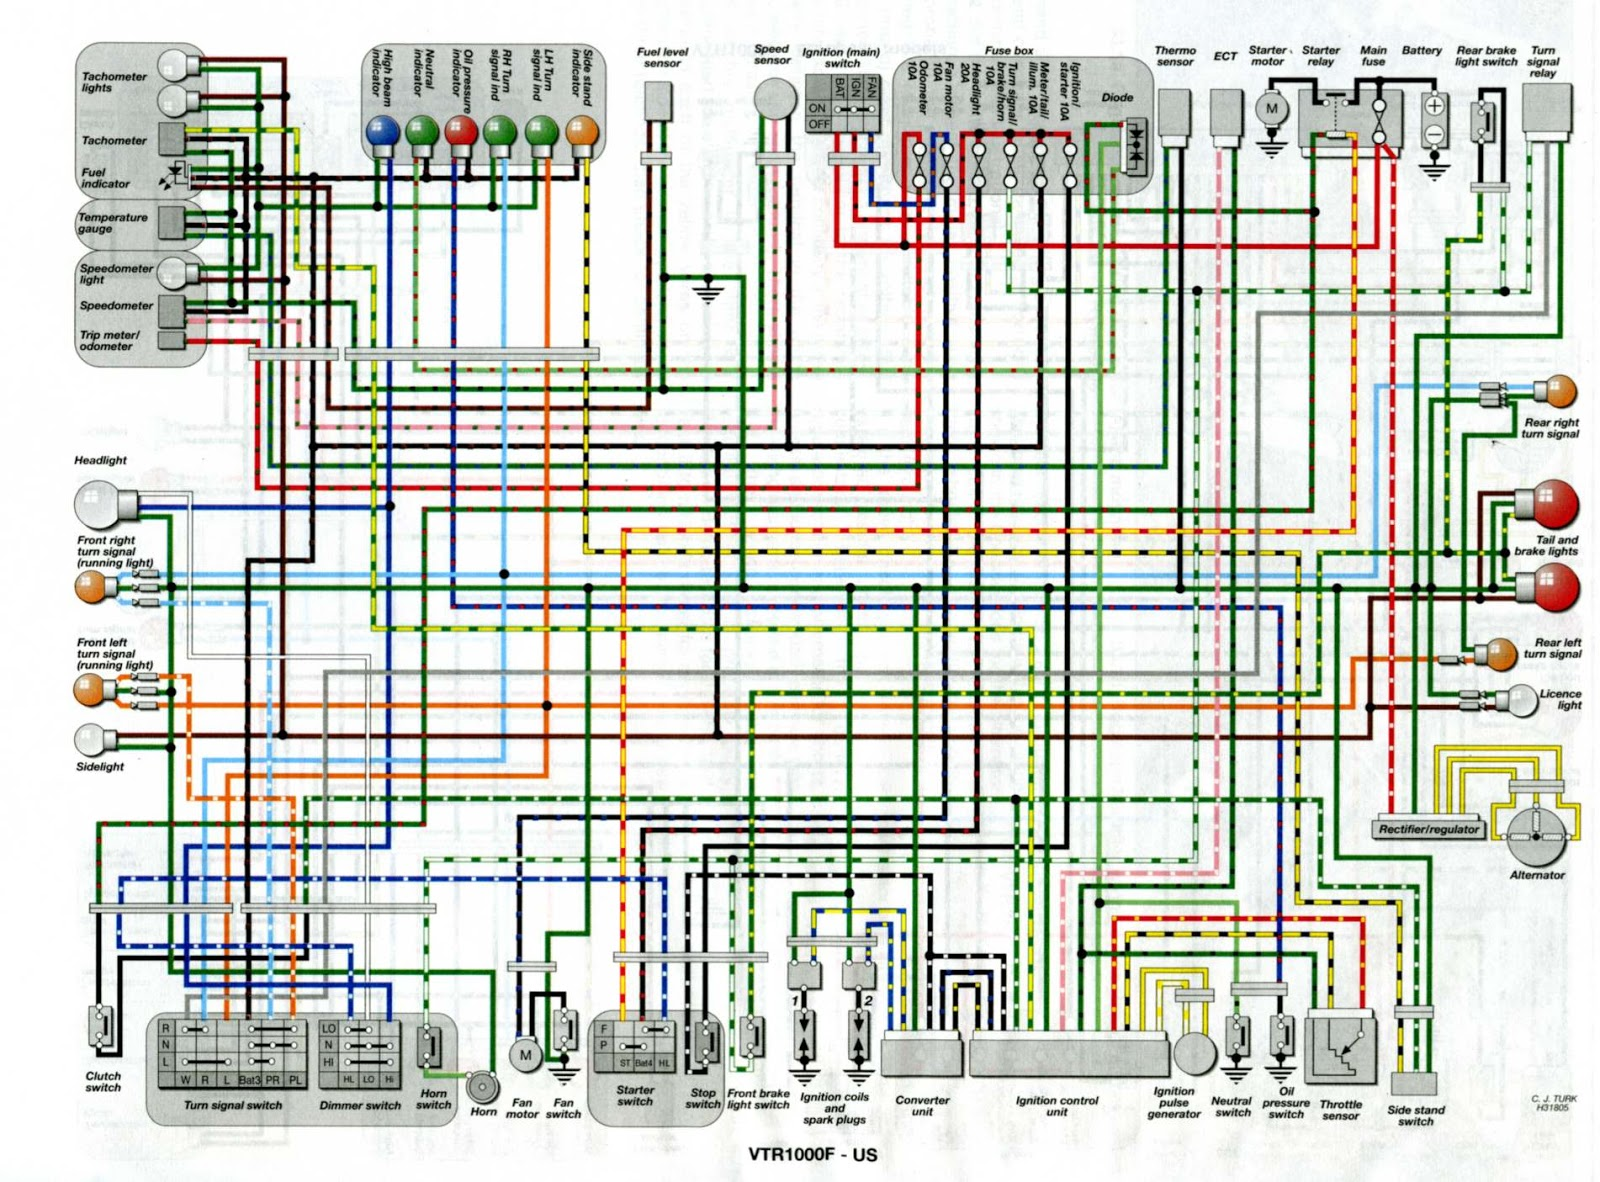 Yamaha R6 Wiring Diagram 2001 additionally Moto schem yamaha tdm850 1999 color moto in addition Mini Relay Diagram further 92438 Ignition Wiring Diagram Needed also 1975cb750f blogspot. on kawasaki r1 wiring diagram